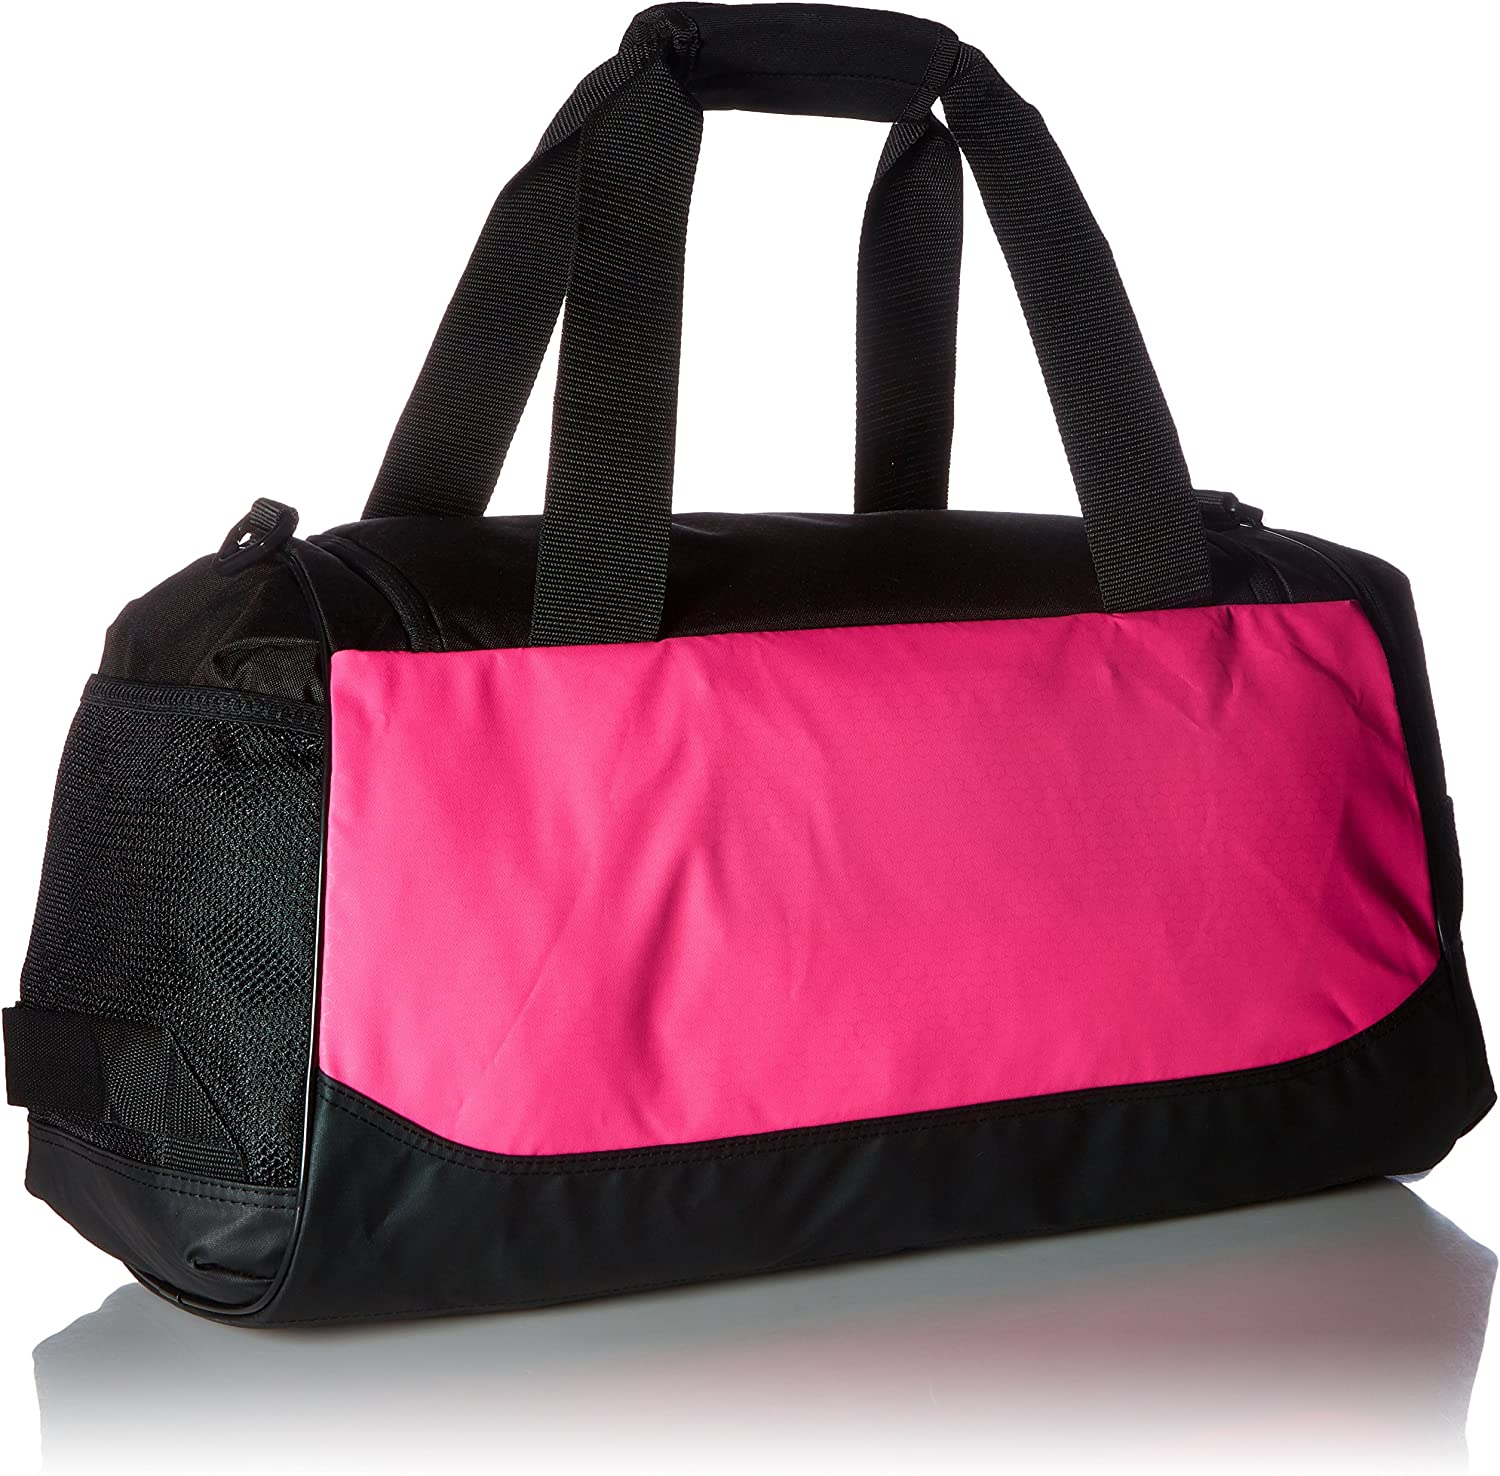 adidas Unisex Team Issue Small Duffel Bag, Shock Pink, ONE SIZE